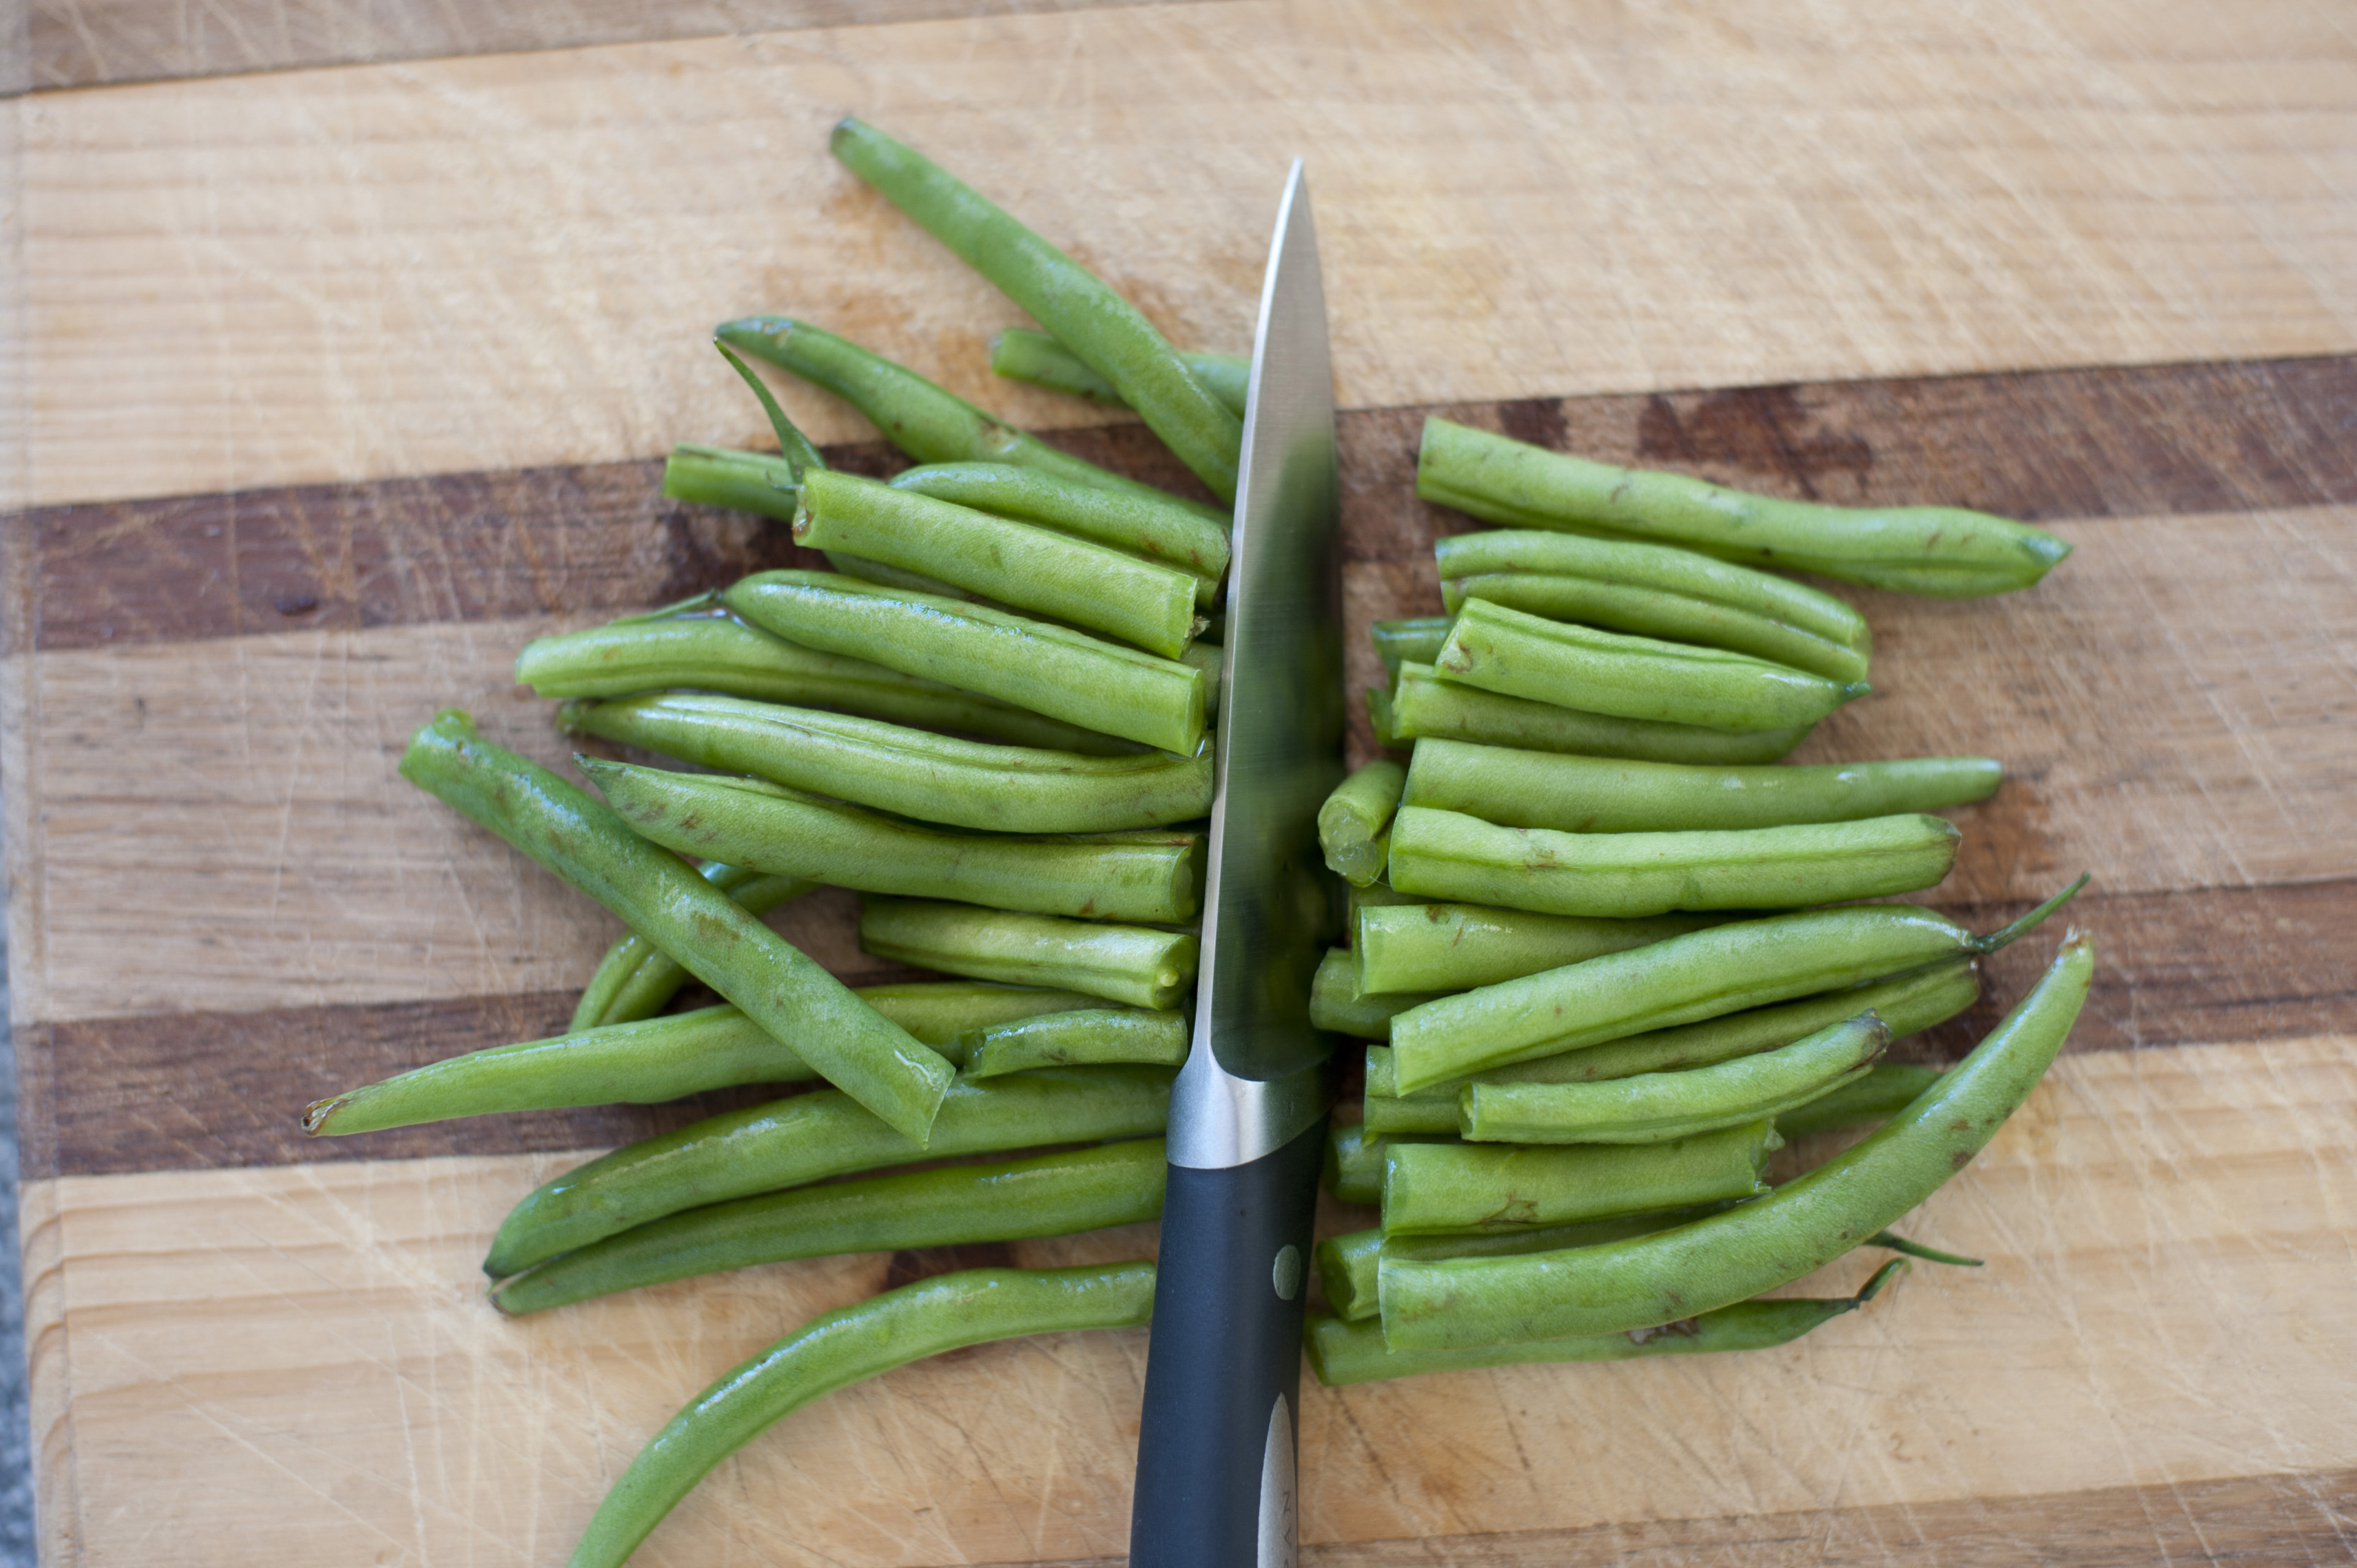 Close up Slicing Healthy Fresh Green Beans using Knife on Top of Wooden Chopping Board